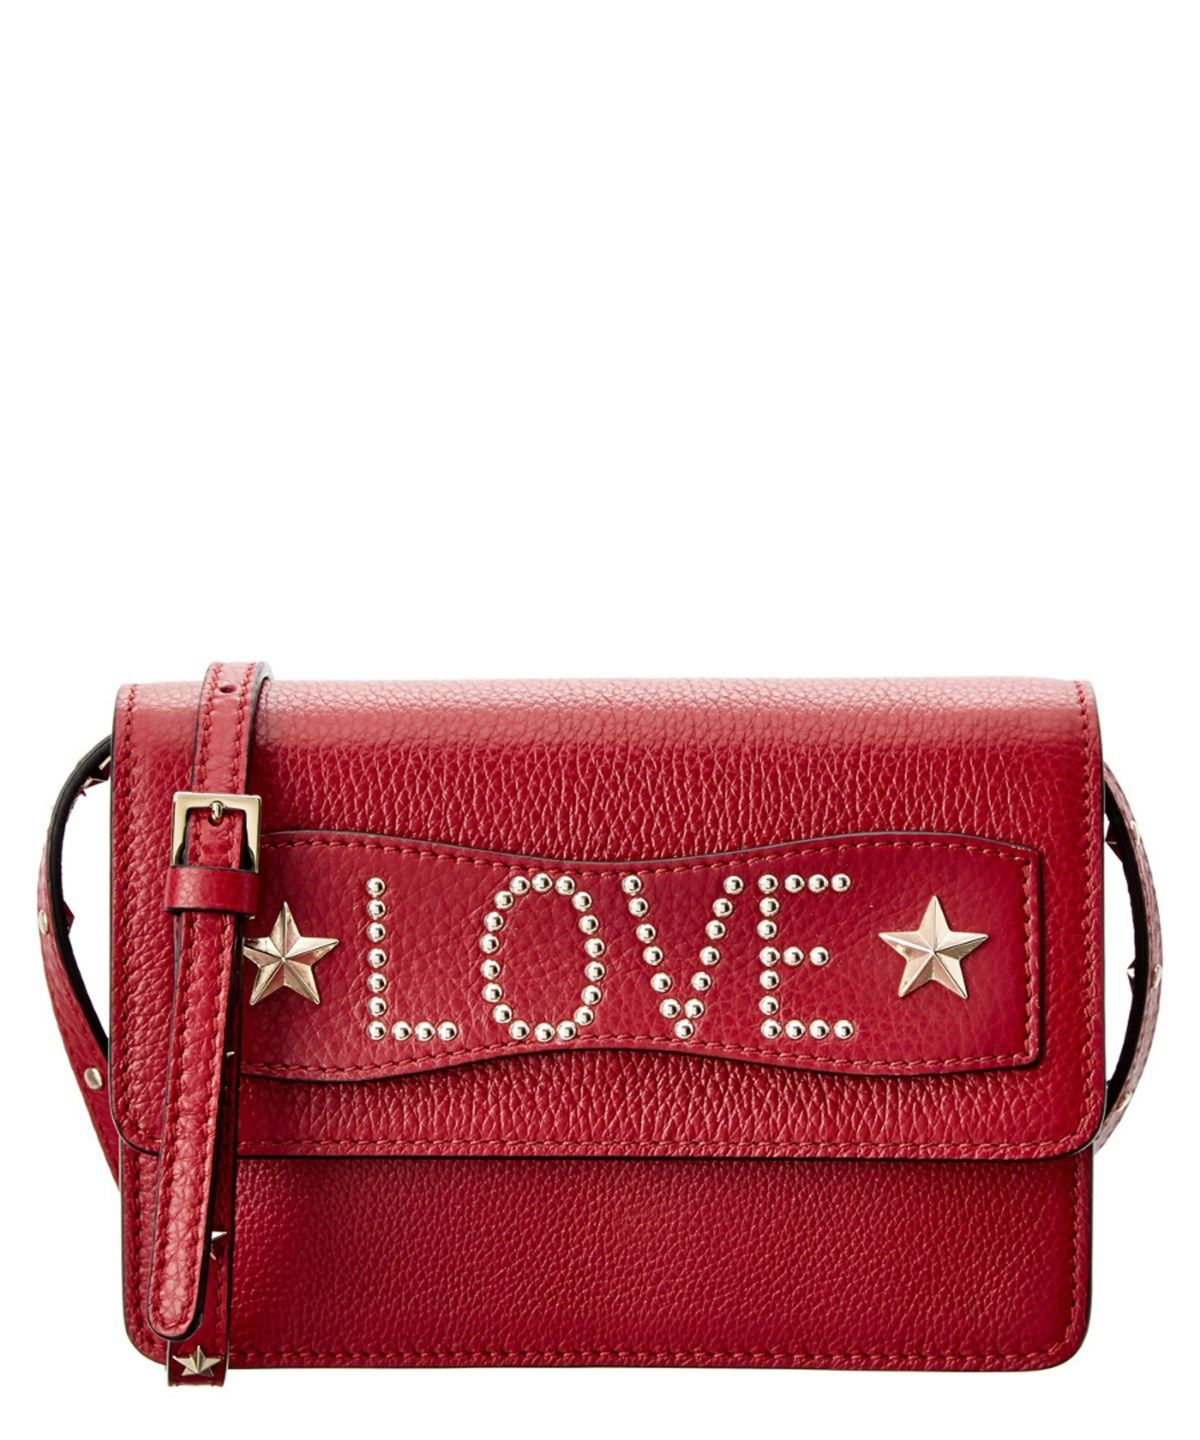 3e9cdb596c RED VALENTINO Red Valentino Studded Love Leather Crossbody'. #redvalentino # bags #shoulder bags #leather #crossbody #lining #